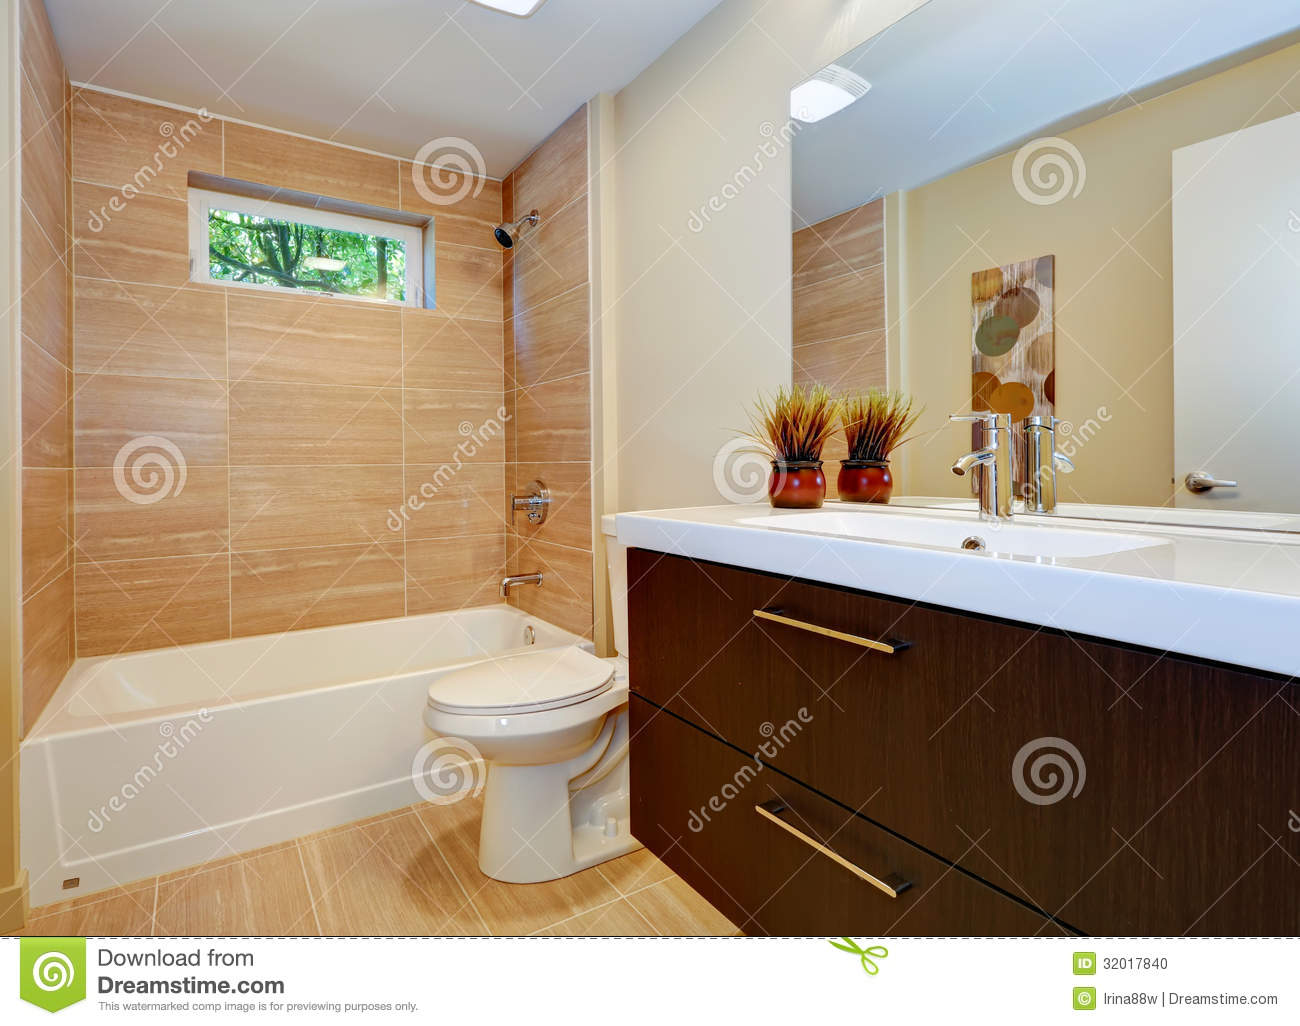 Modern new bathroom design with sink and white tub stock for New bathroom ideas photos